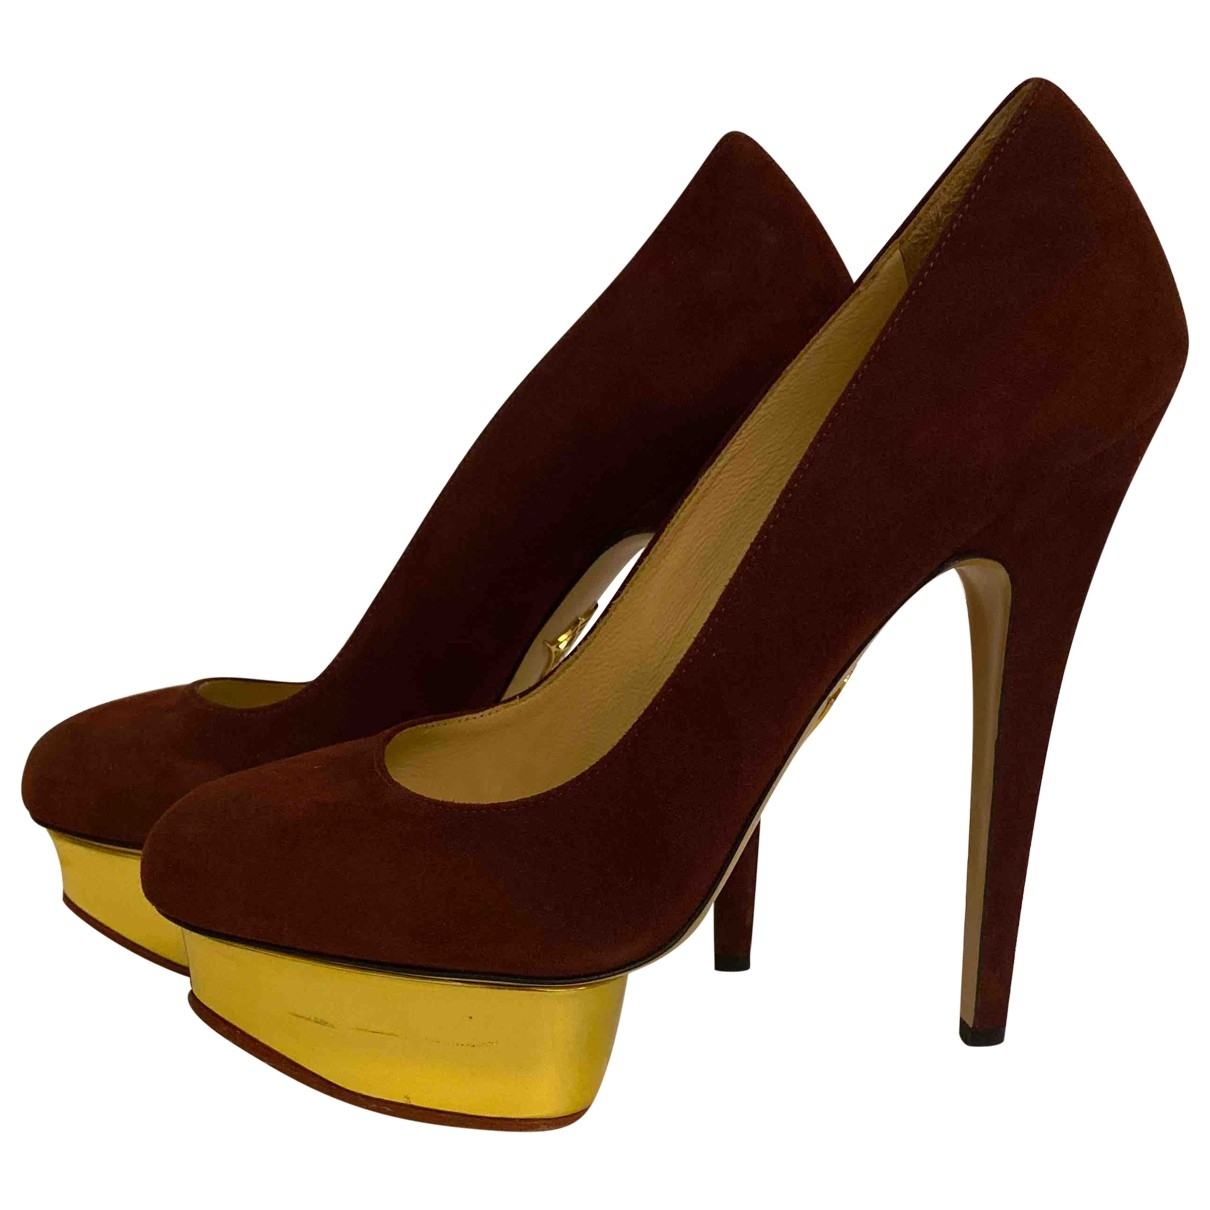 Charlotte Olympia Dolly Burgundy Suede Heels for Women 38.5 EU